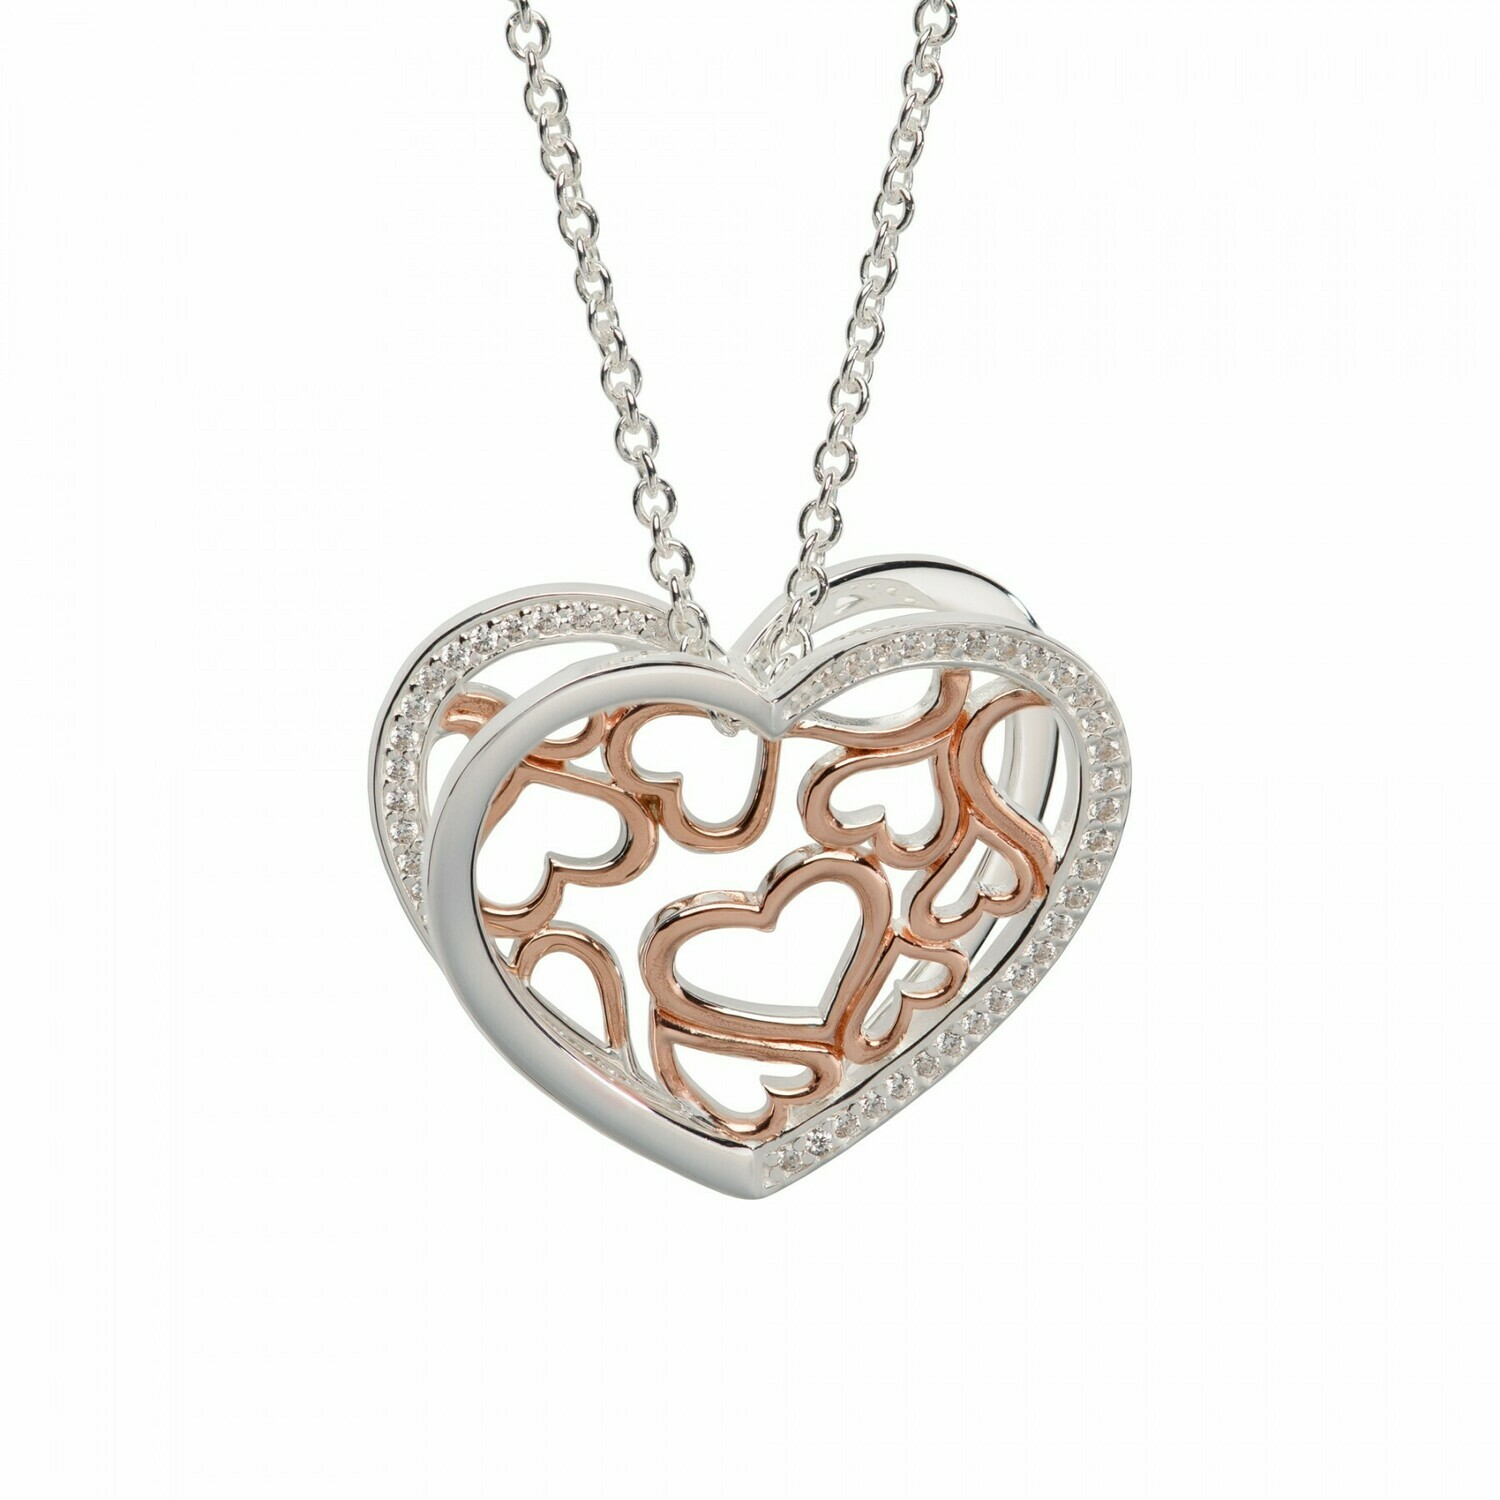 Unique & Co. 3D Rose Gold & Sterling Silver Hearts Necklace